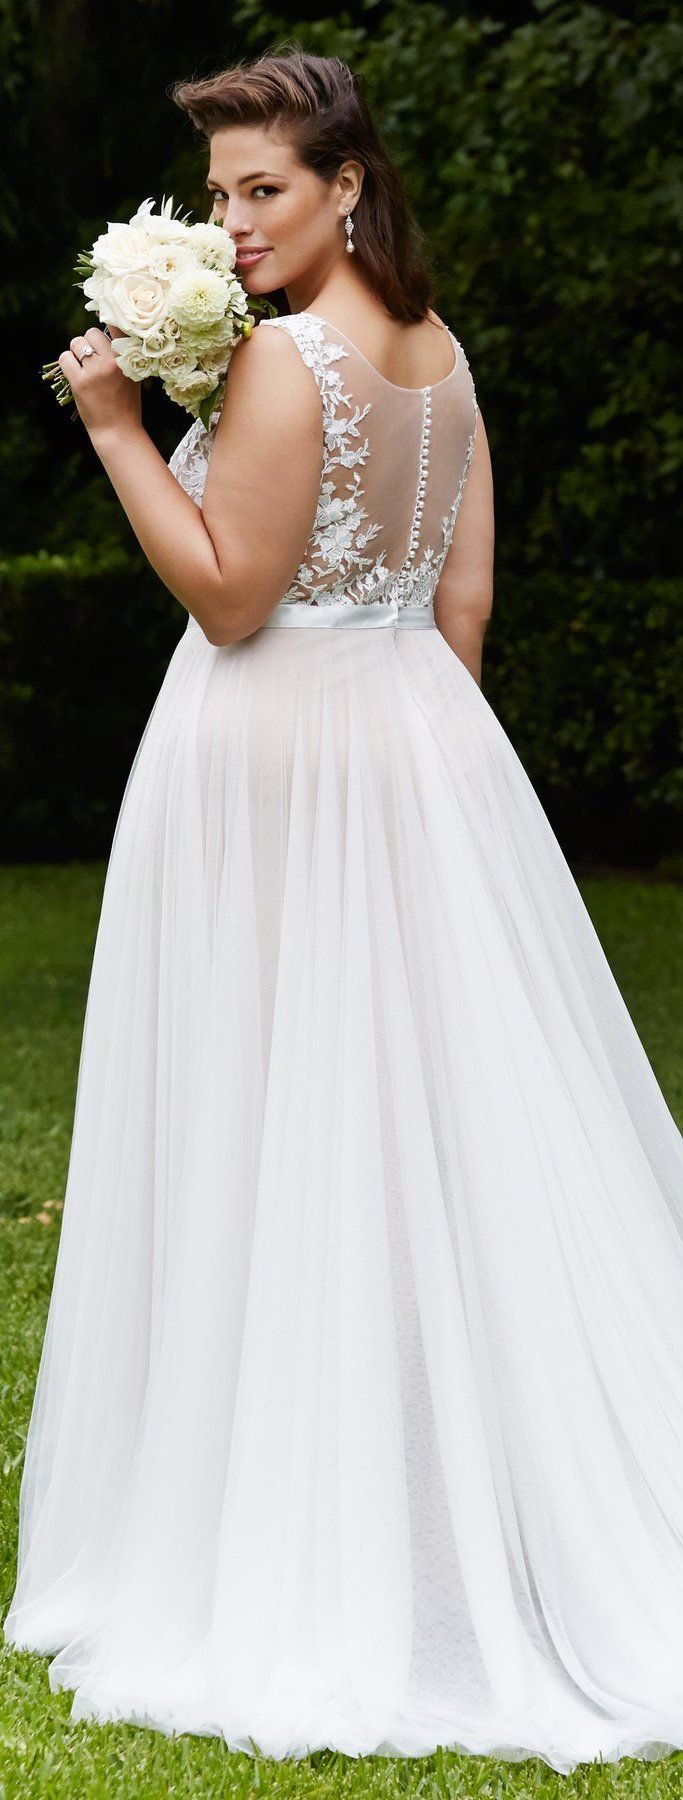 20 Gorgeous Wedding Gowns Made For Curvy Girls With Serious Style